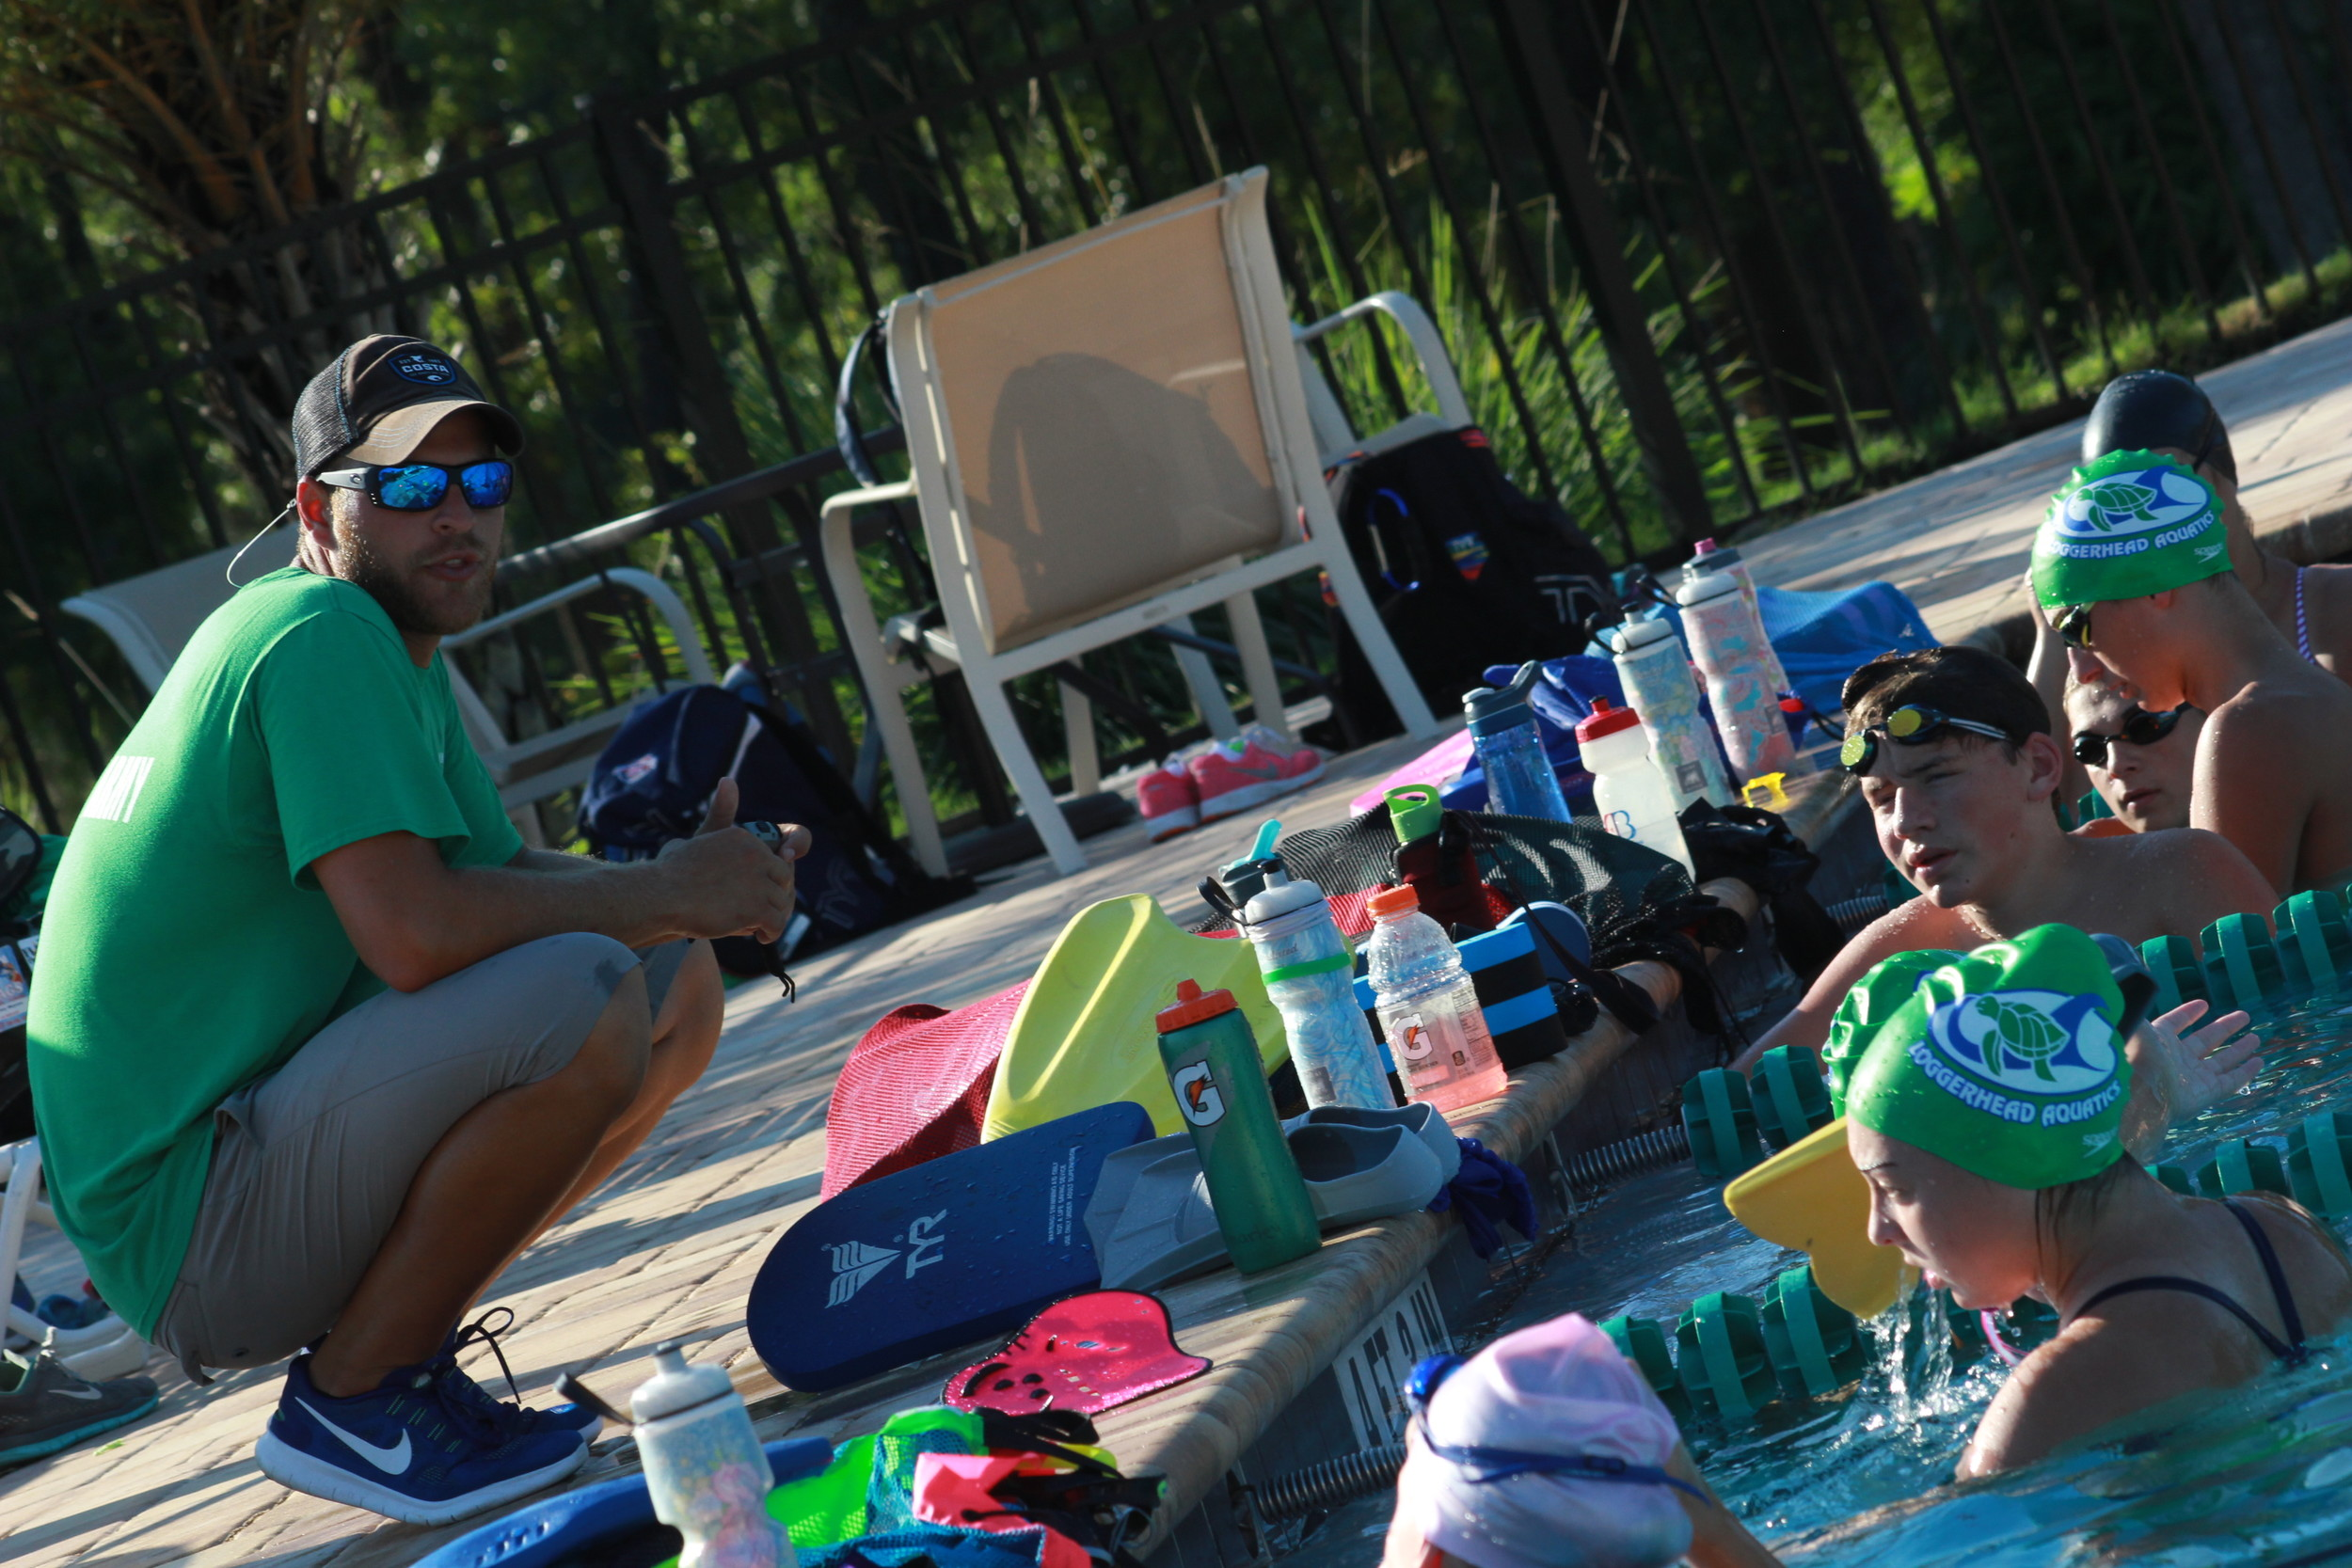 Fleming Island High graduate Kyle Casias supervises recent swim session at Magnolia Point Golf and Country Club as he undertakes to build strong aquatics program for area swimmers.